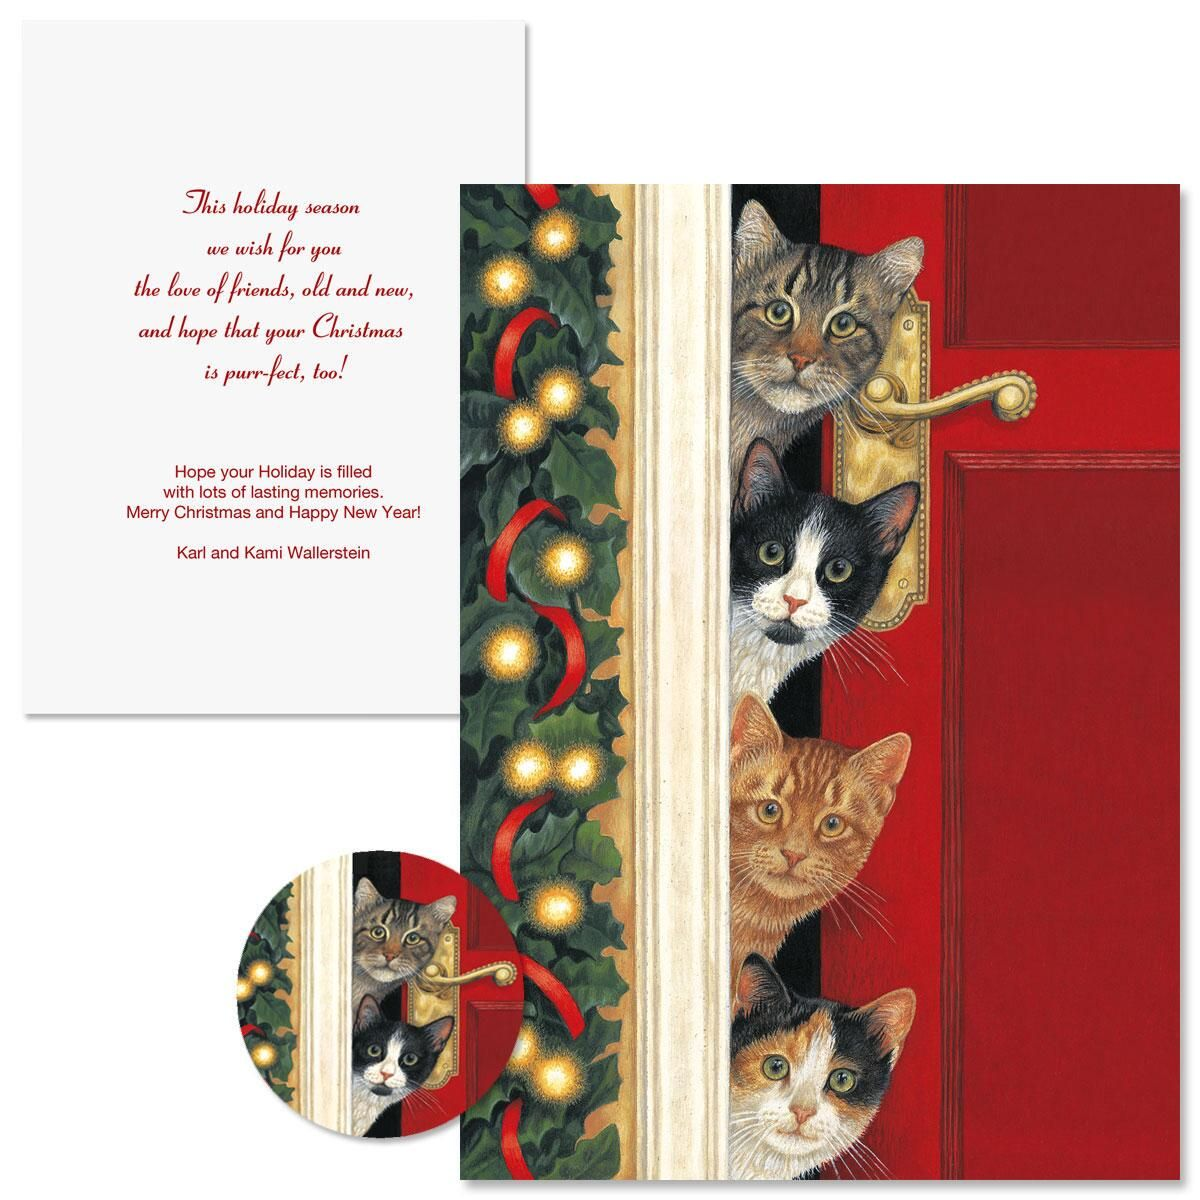 Whiskered Welcome Christmas Cards -  Nonpersonalized